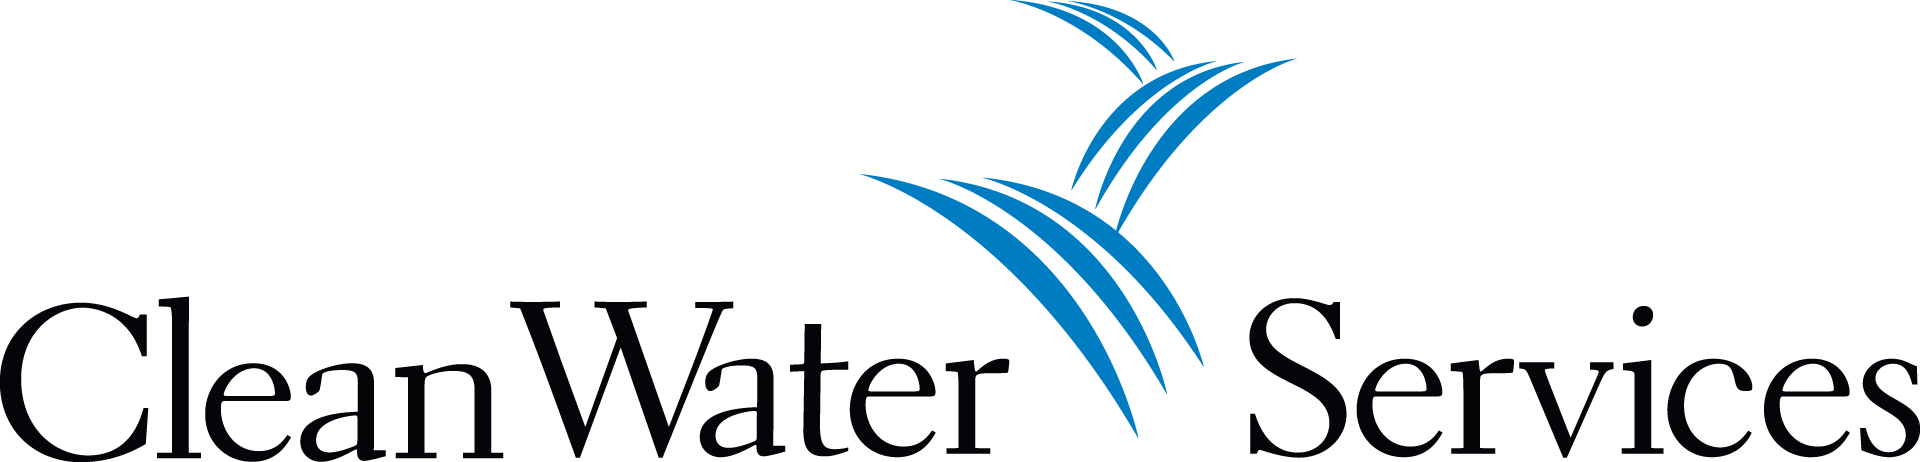 clean-water-services-new-logo-285-black